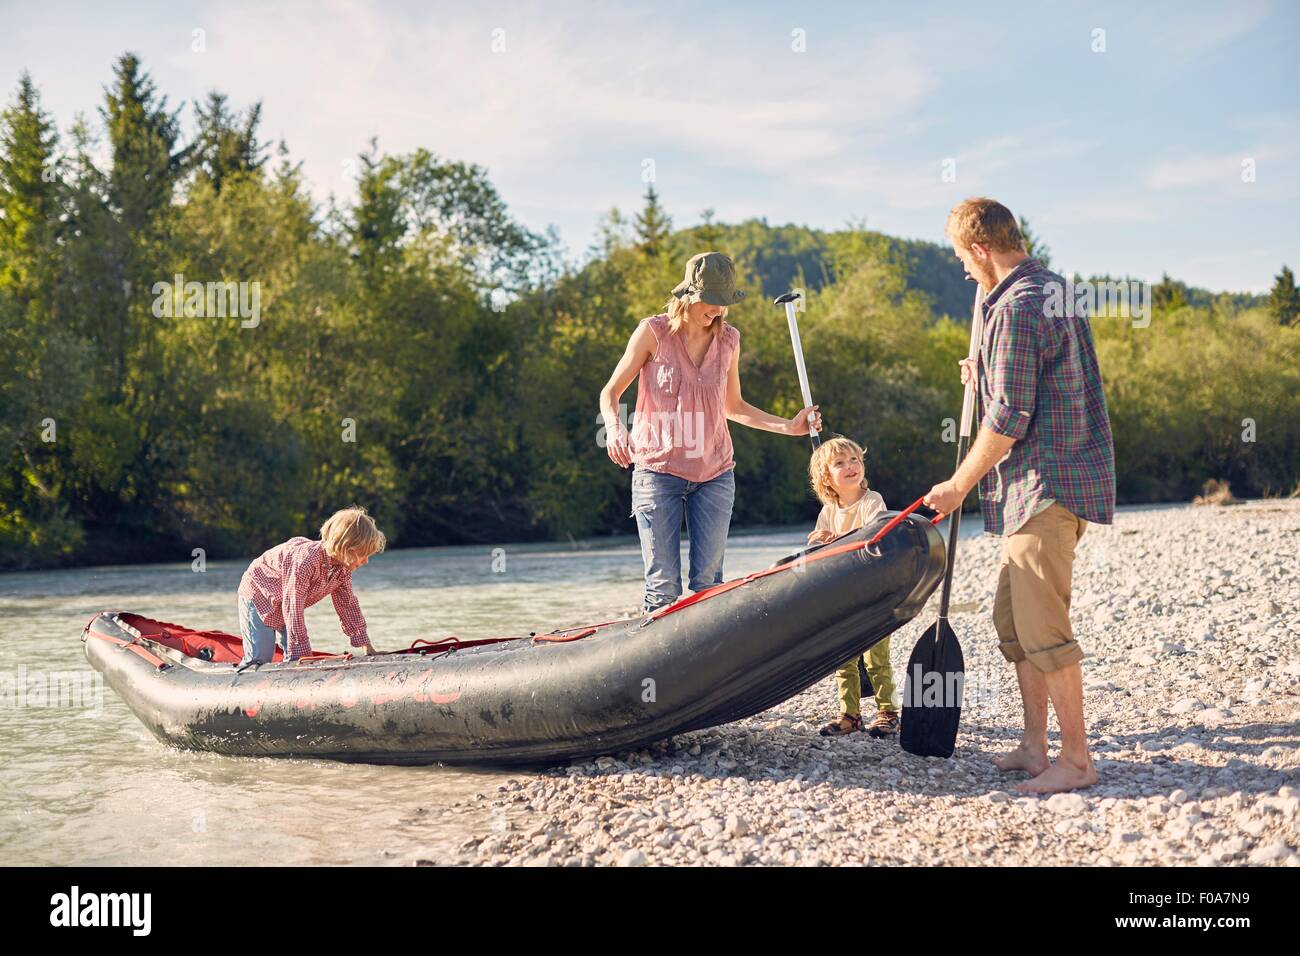 Family pulling dinghy onto riverbank, holding paddle boards - Stock Image